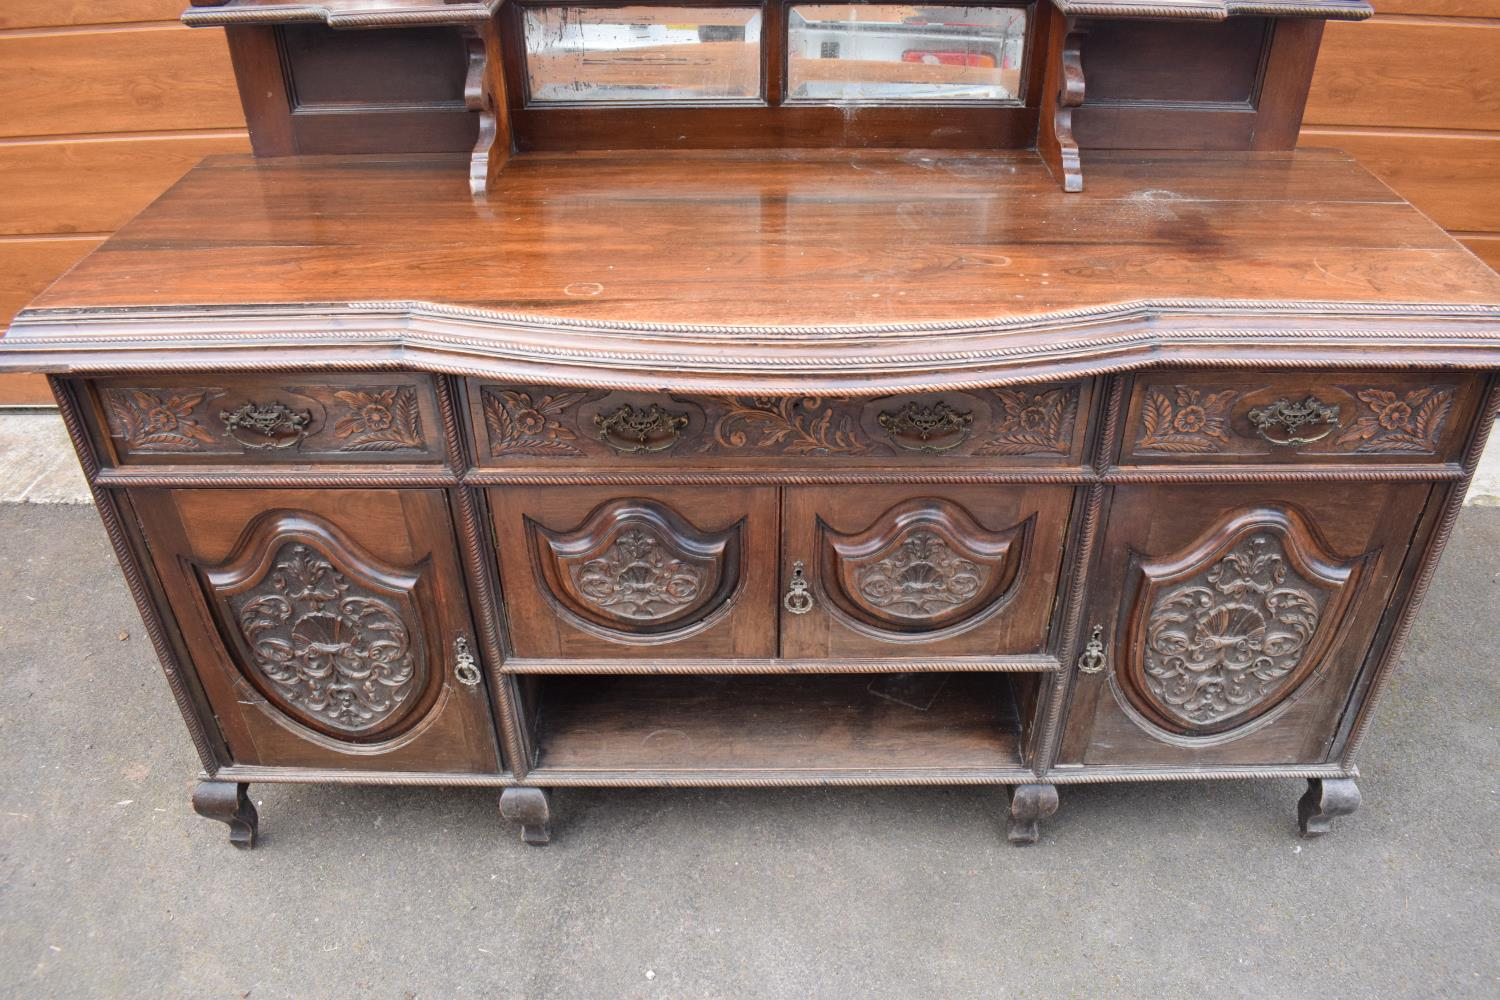 Edwardian large carved oak mirror backed sideboard. 178 x 64 x 224cm height. In good functional - Image 10 of 18